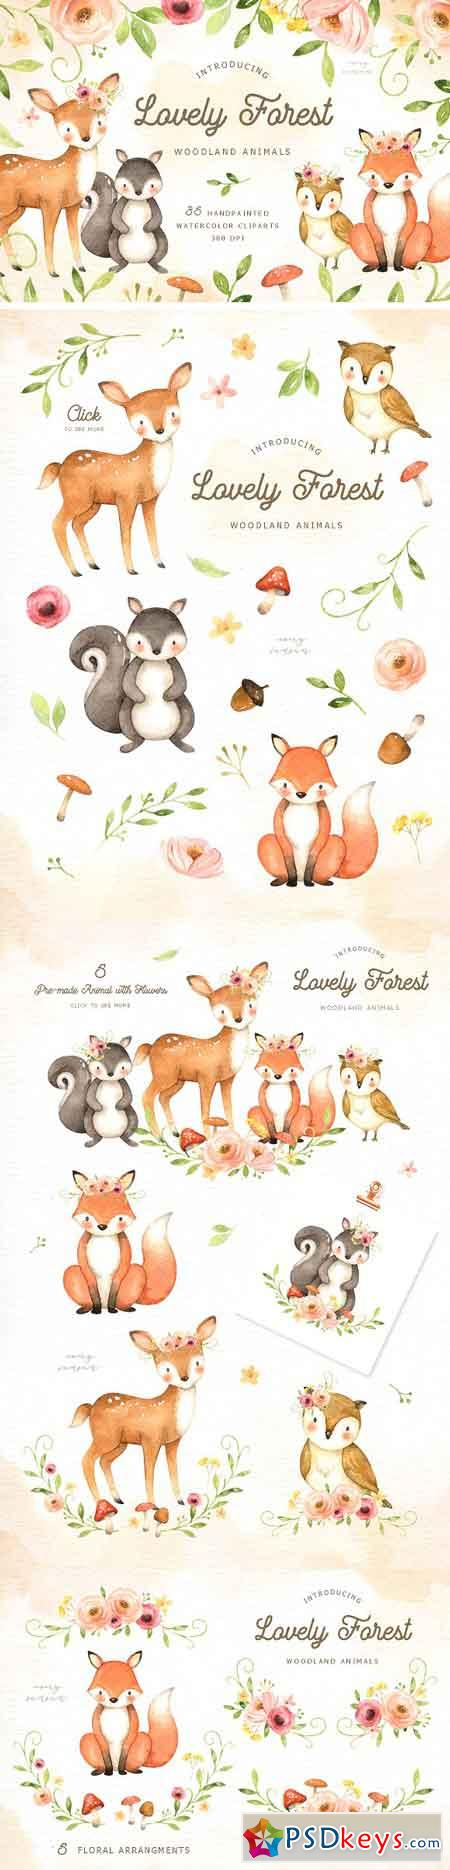 Lovely Forest Watercolor Clip Art 2893425